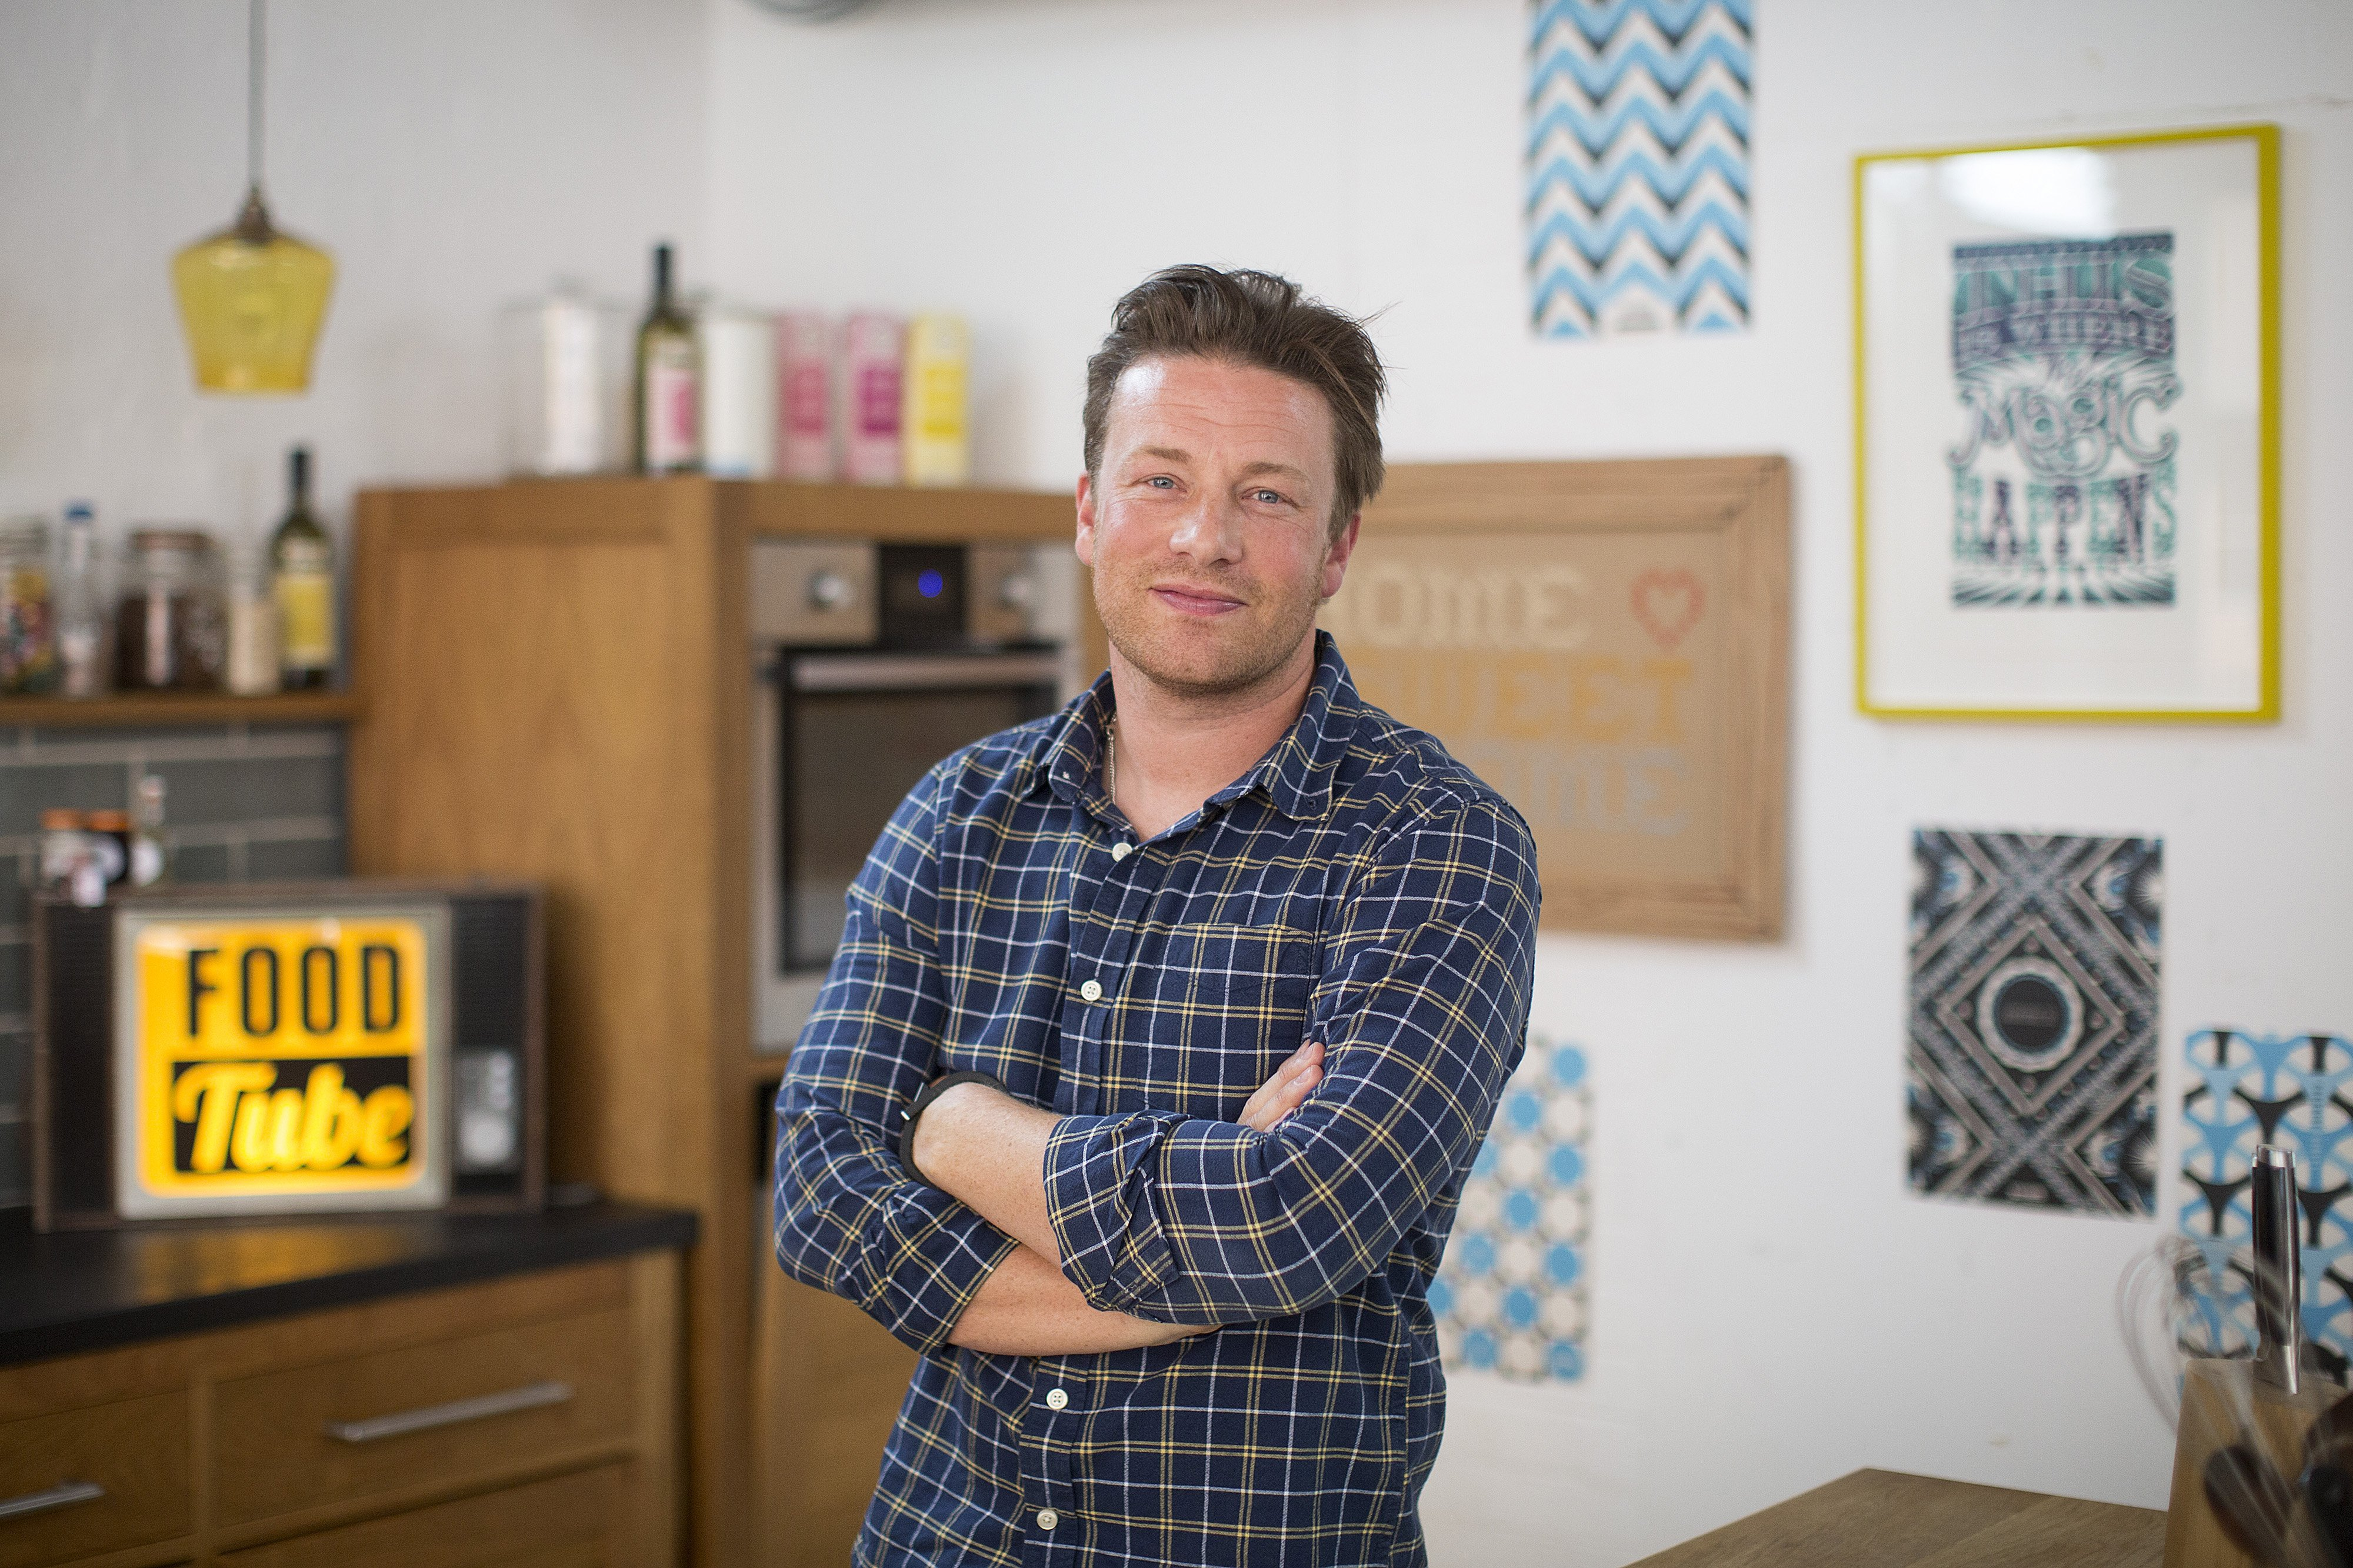 Jamie Oliver pictured after an interview in his office in 2014, London, England. | Photo: Getty Images